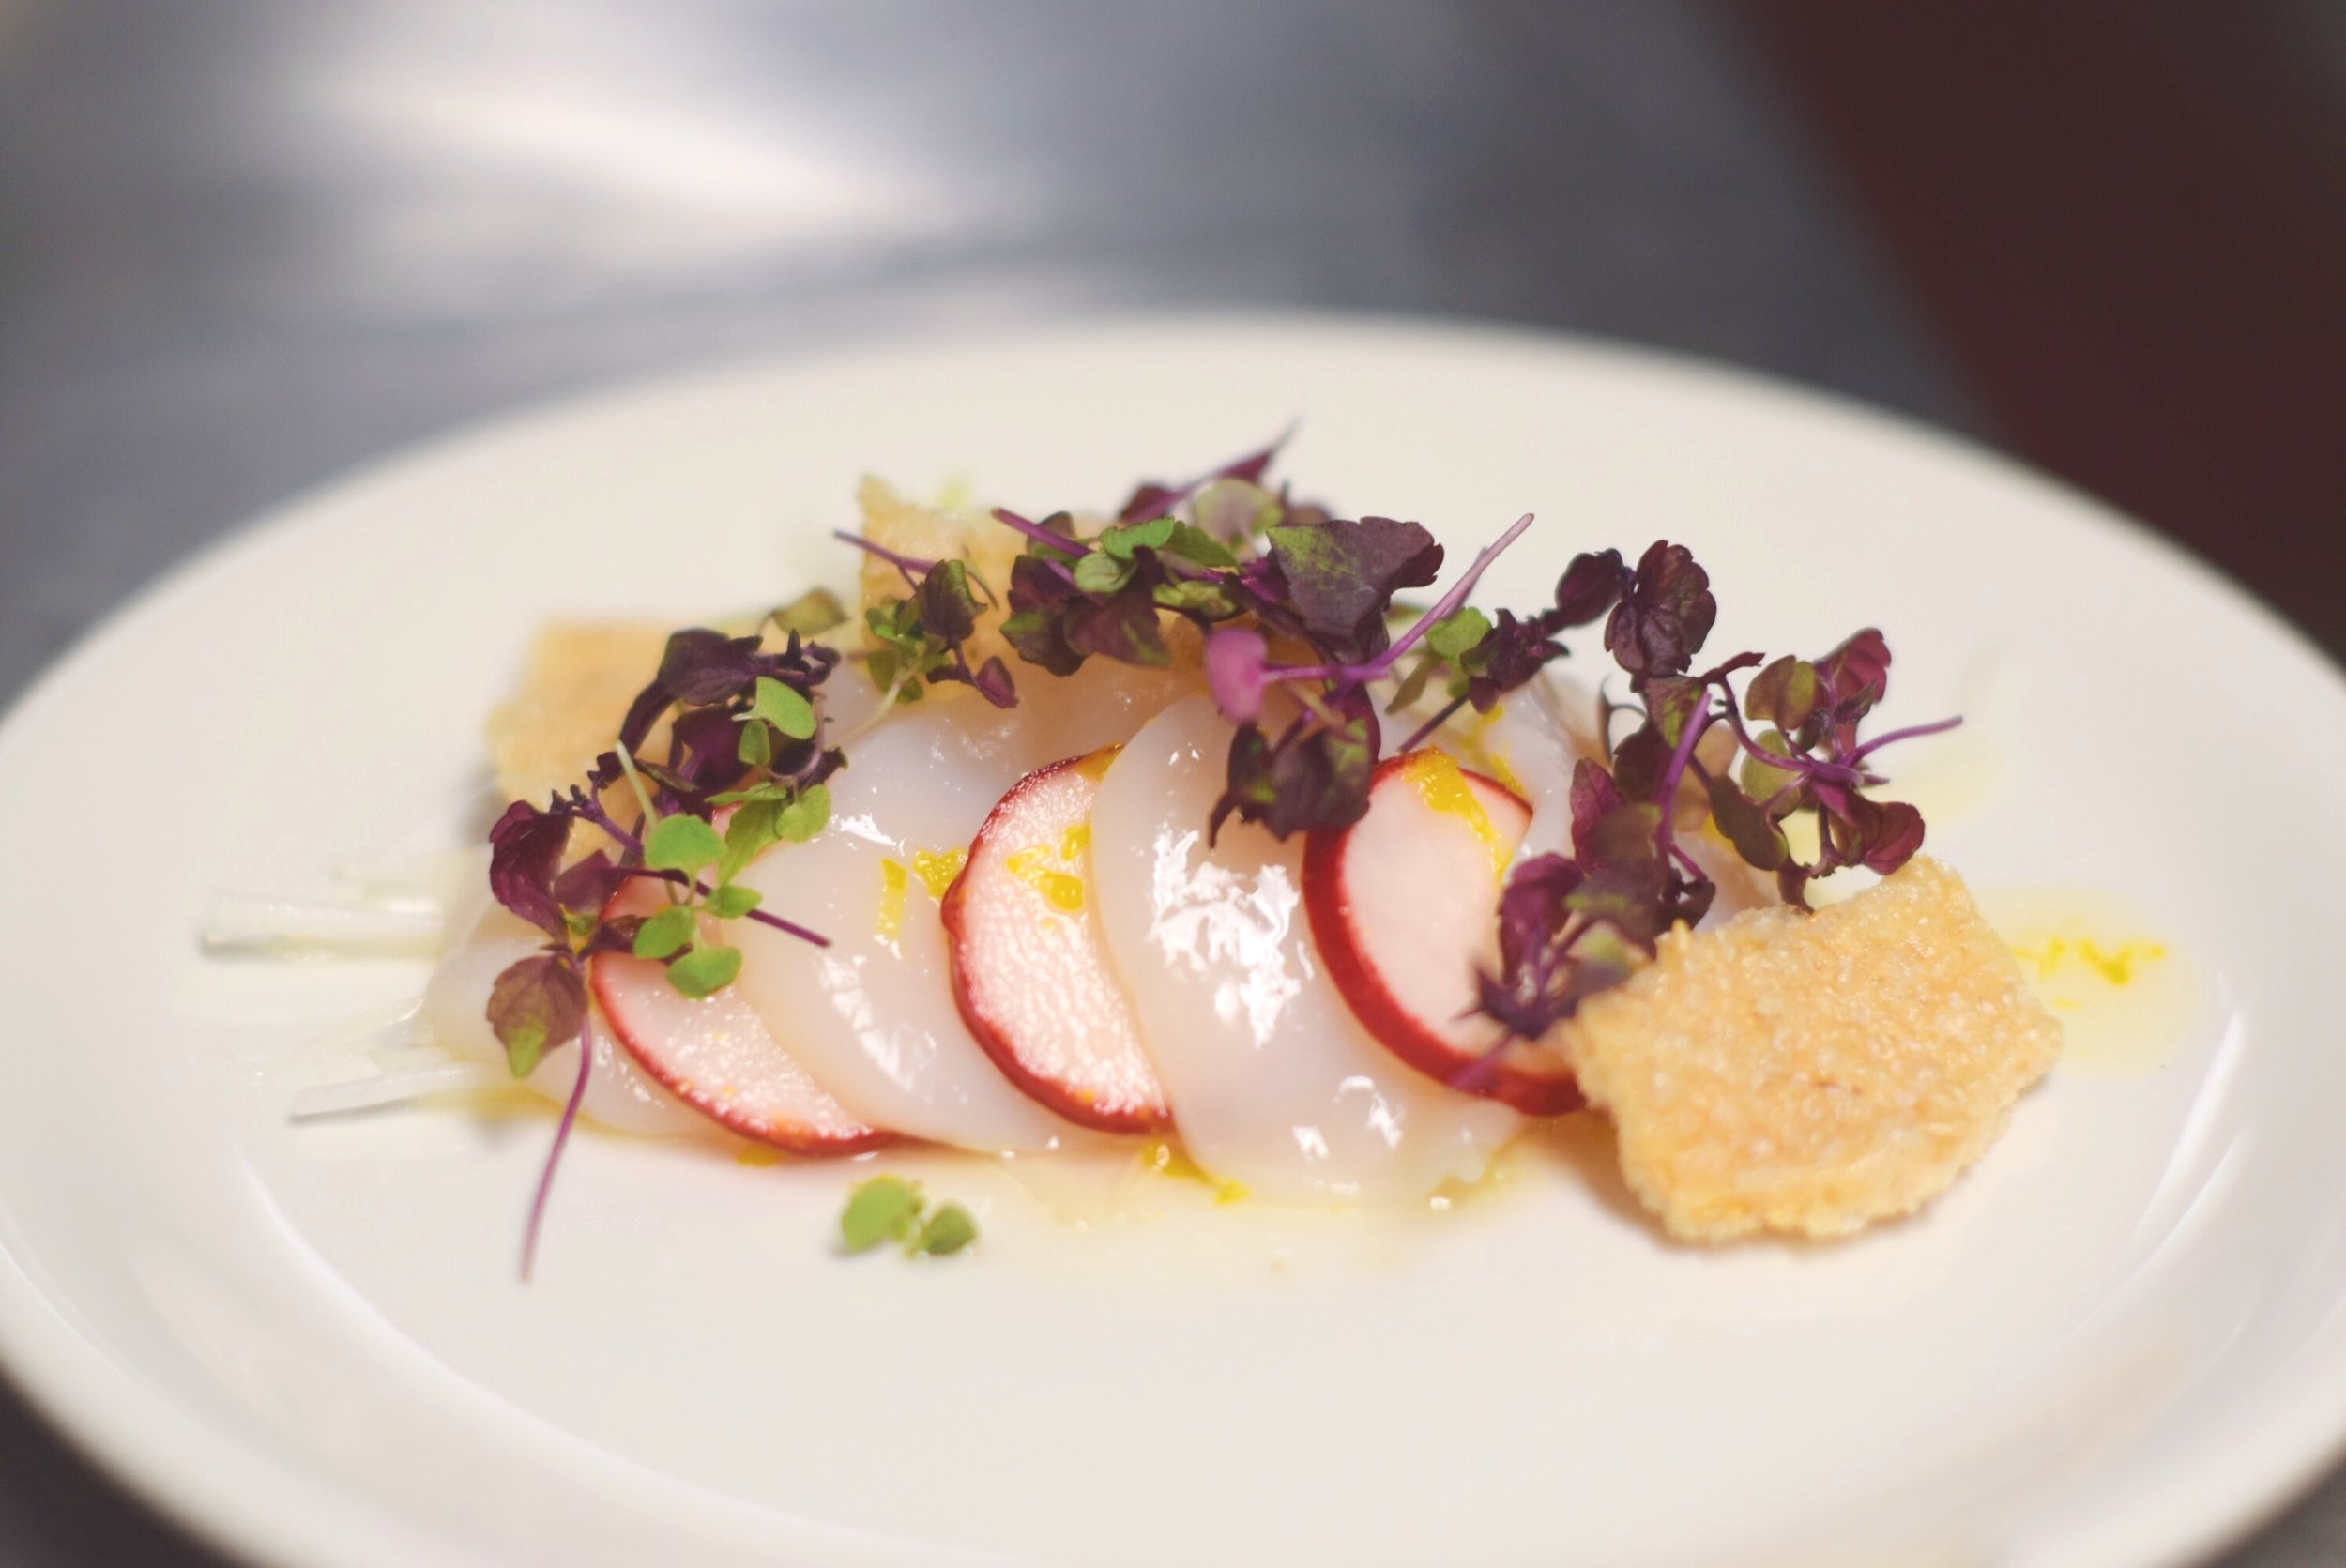 Scallop crudo by Jason Wang (photo by Teresa Fung)